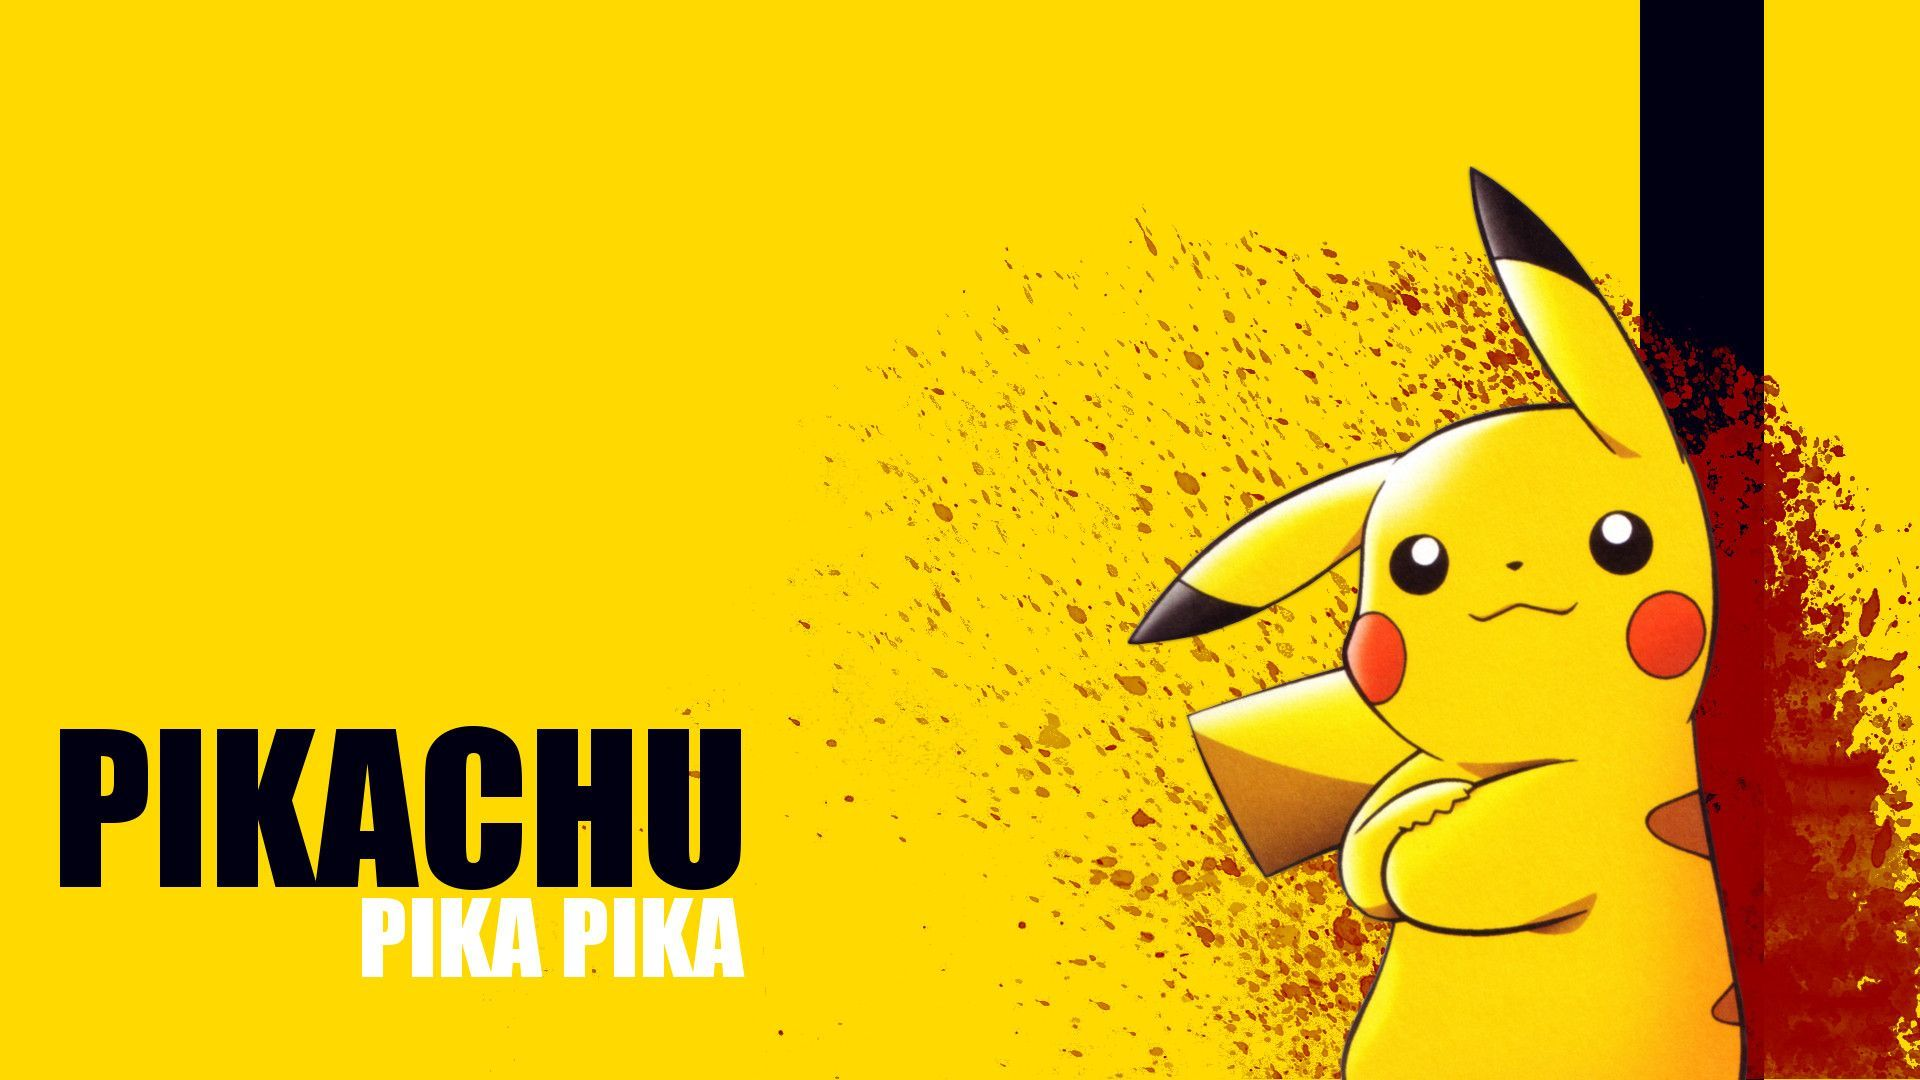 1920x1080 Pikachu Wallpapers For Computer 64 Images Pikachu Wallpaper Pikachu Pikachu Wallpaper Backgrounds